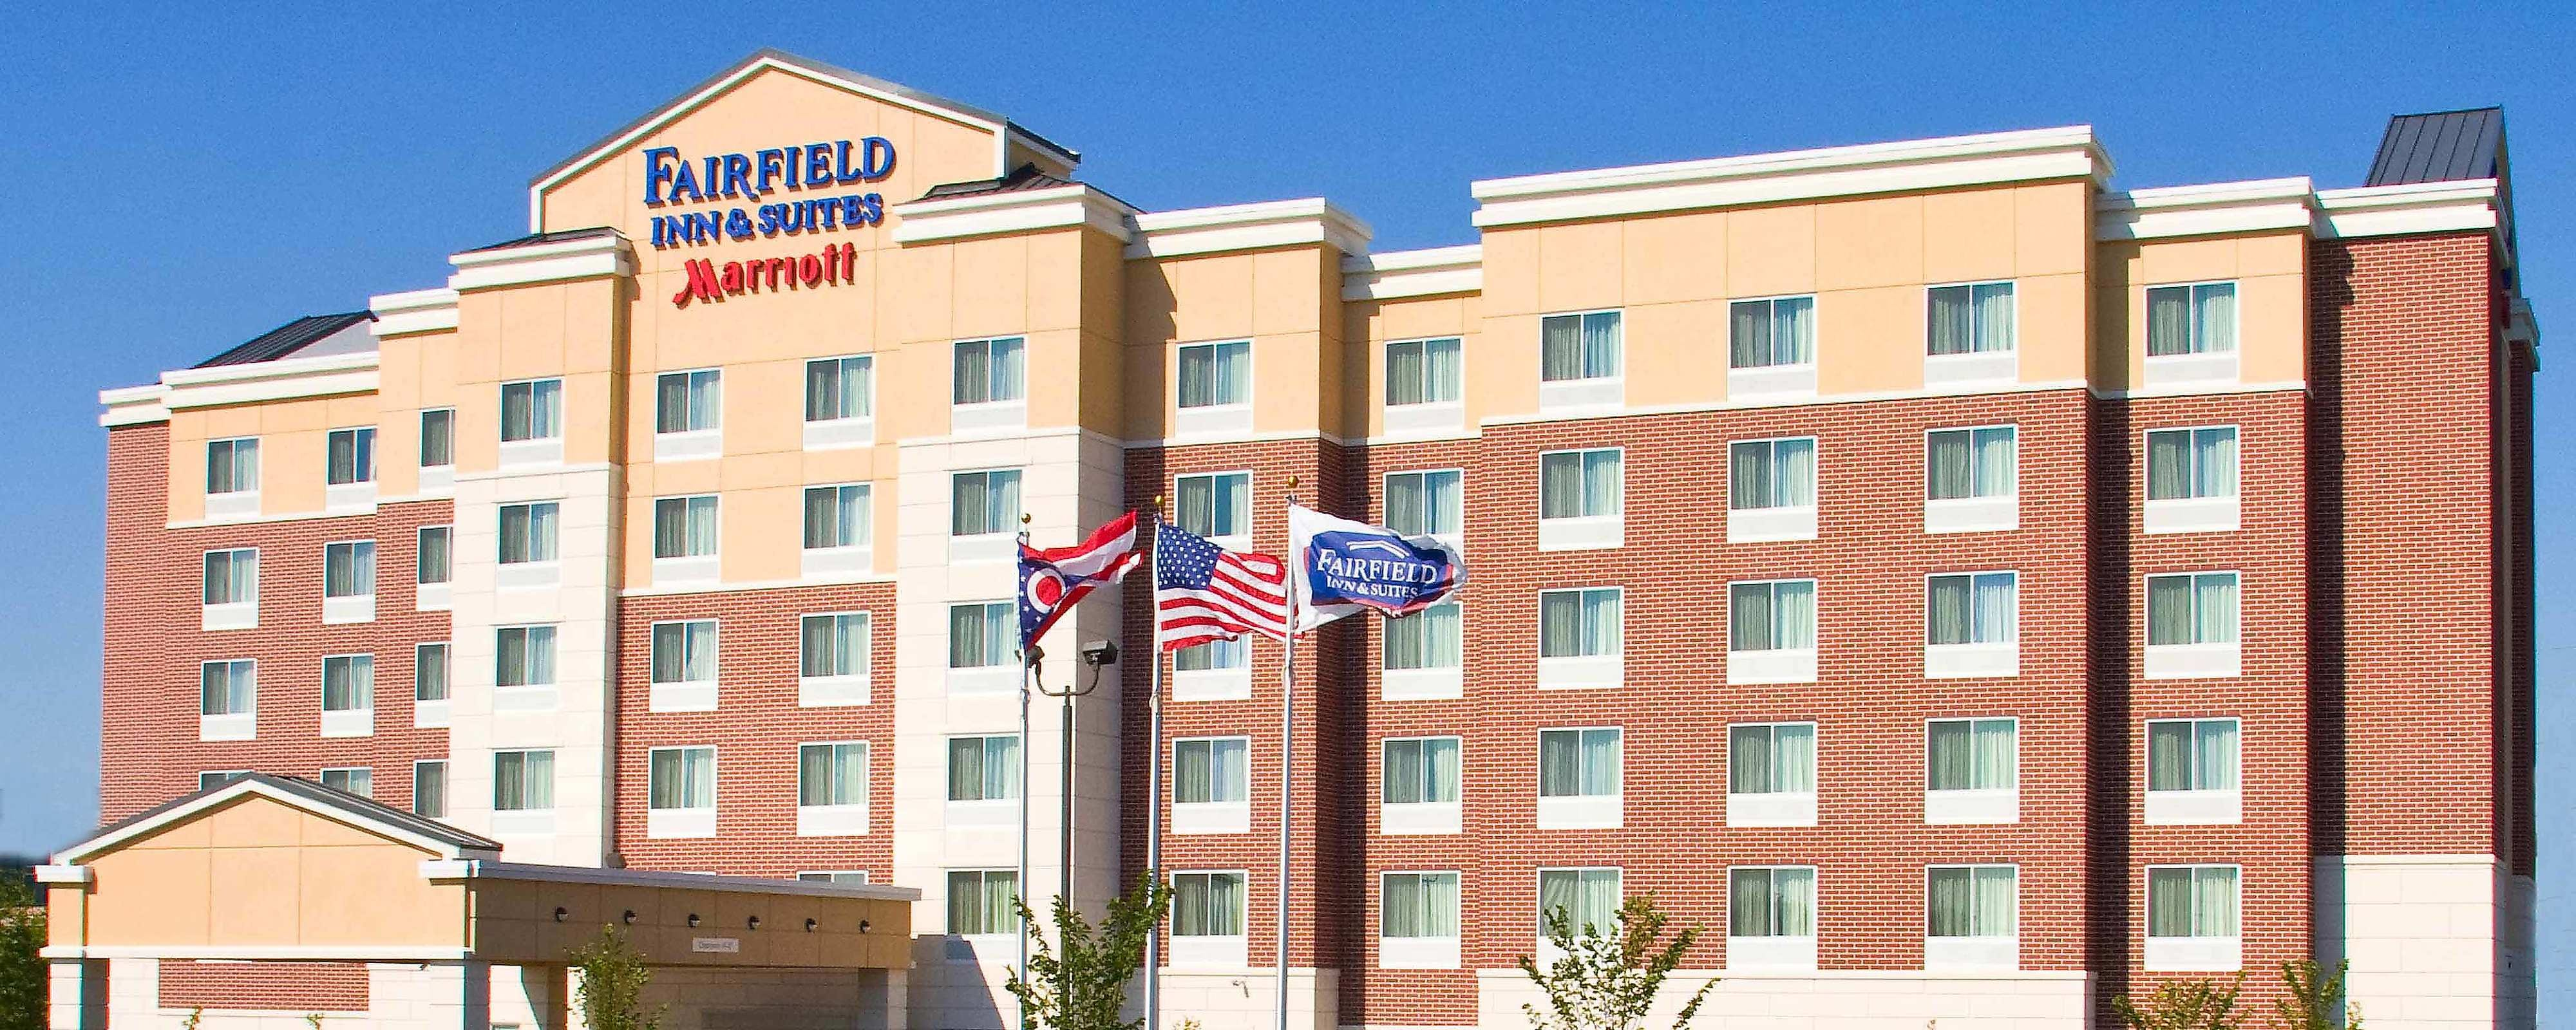 Fairfield Inn & Suites Polaris